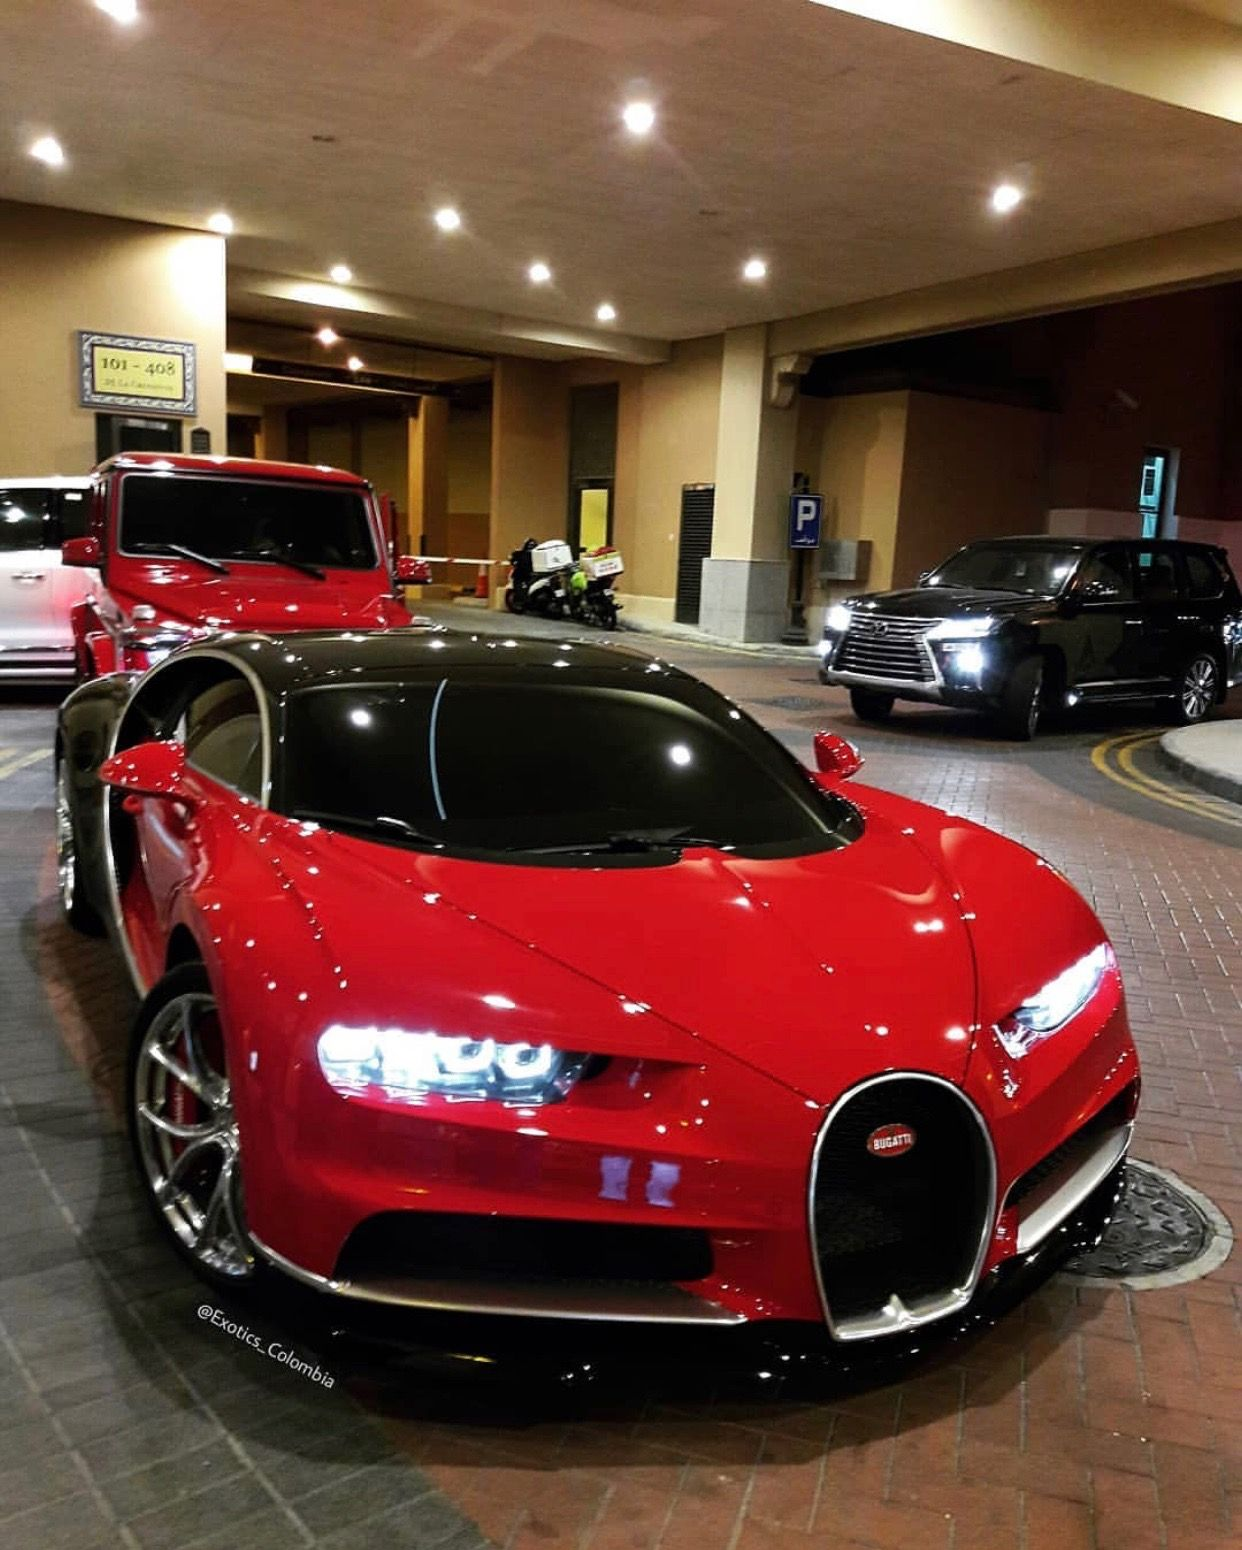 Bugatti Chiron painted in Red & Black w/ chrome accents Photo taken by: @exotics_columbia on ...